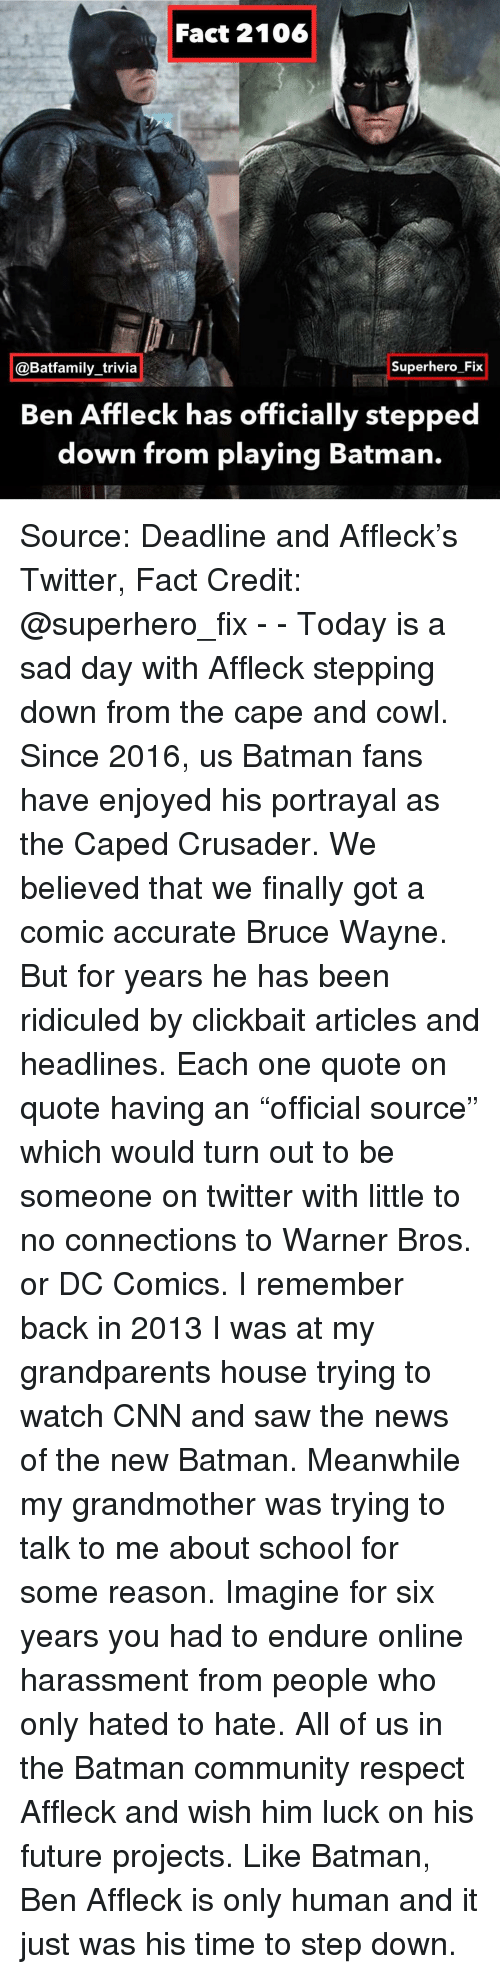 """connections: Fact 2106  @Batfamily_trivia  Superhero Fix  Ben Affleck has officially stepped  down from playing Batman. Source: Deadline and Affleck's Twitter, Fact Credit: @superhero_fix - - Today is a sad day with Affleck stepping down from the cape and cowl. Since 2016, us Batman fans have enjoyed his portrayal as the Caped Crusader. We believed that we finally got a comic accurate Bruce Wayne. But for years he has been ridiculed by clickbait articles and headlines. Each one quote on quote having an """"official source"""" which would turn out to be someone on twitter with little to no connections to Warner Bros. or DC Comics. I remember back in 2013 I was at my grandparents house trying to watch CNN and saw the news of the new Batman. Meanwhile my grandmother was trying to talk to me about school for some reason. Imagine for six years you had to endure online harassment from people who only hated to hate. All of us in the Batman community respect Affleck and wish him luck on his future projects. Like Batman, Ben Affleck is only human and it just was his time to step down."""